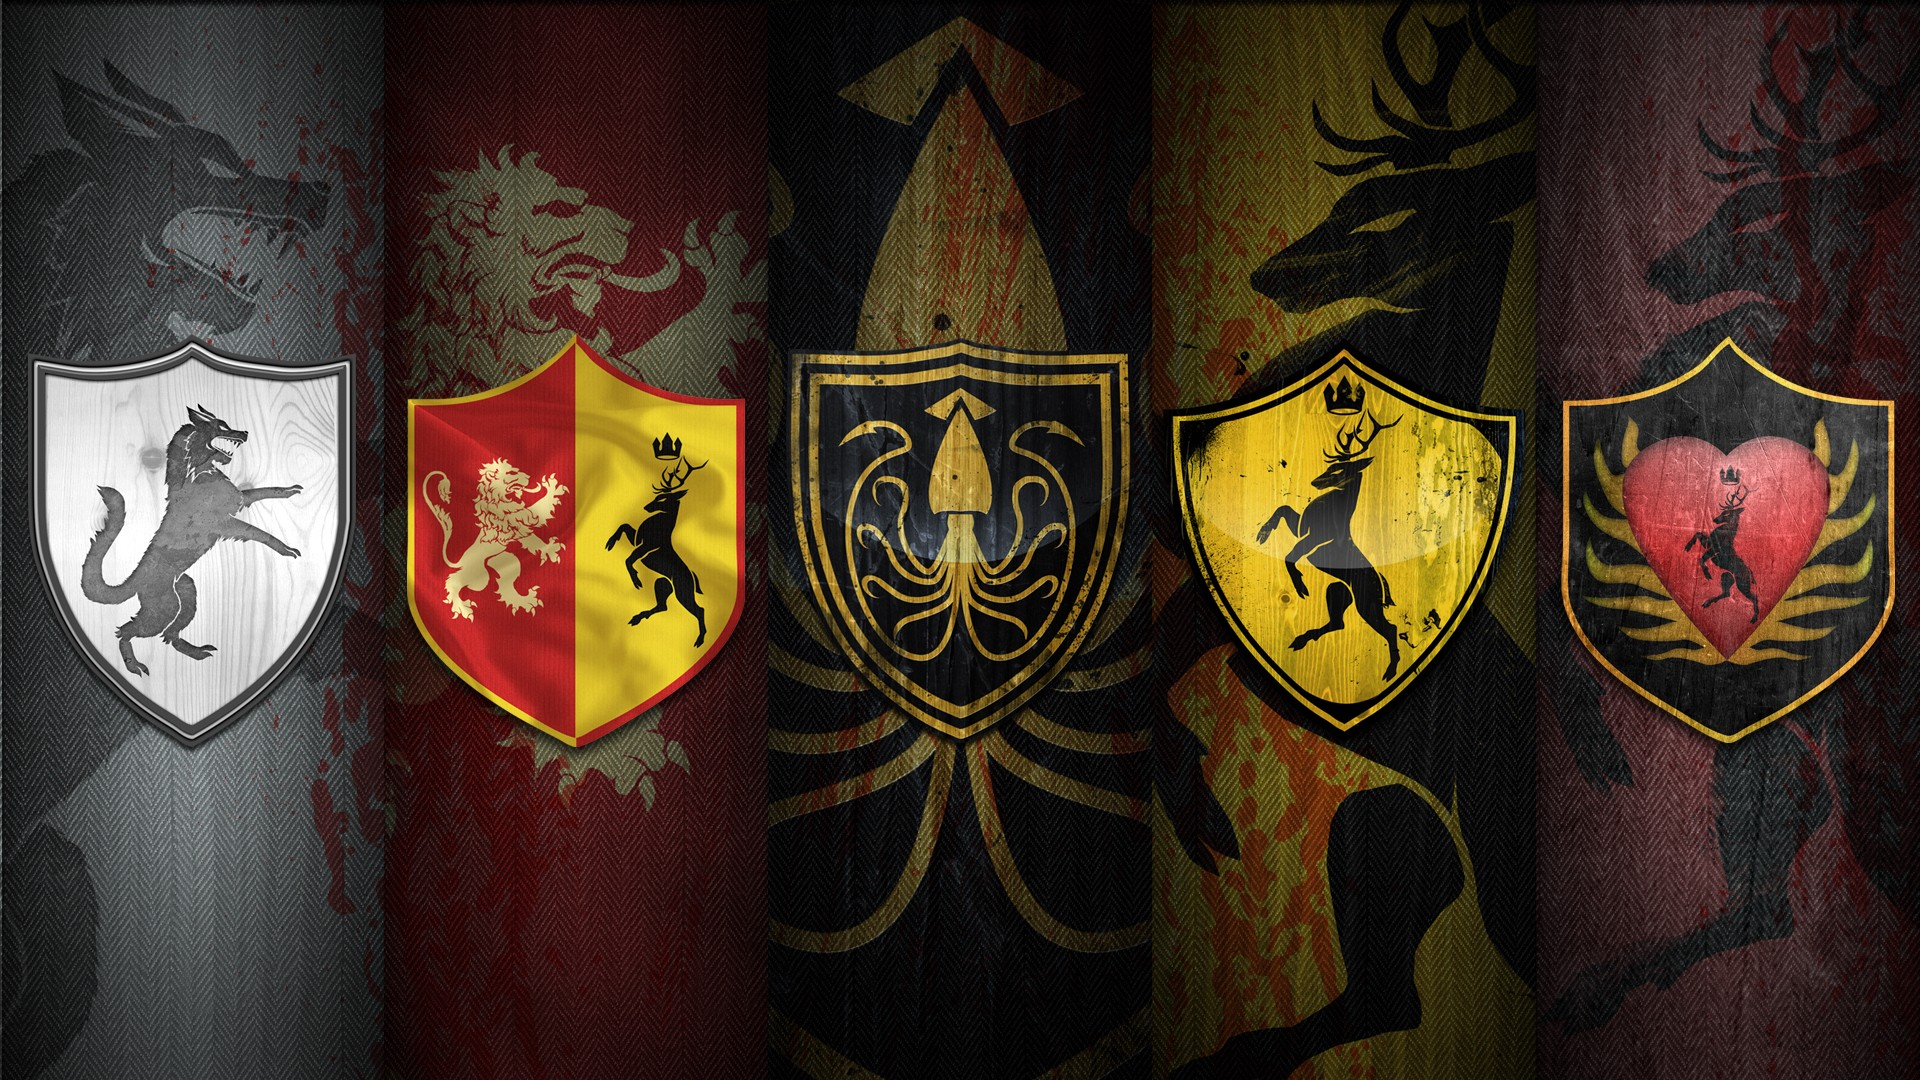 Game Of Thrones wallpaper   1157780 1920x1080